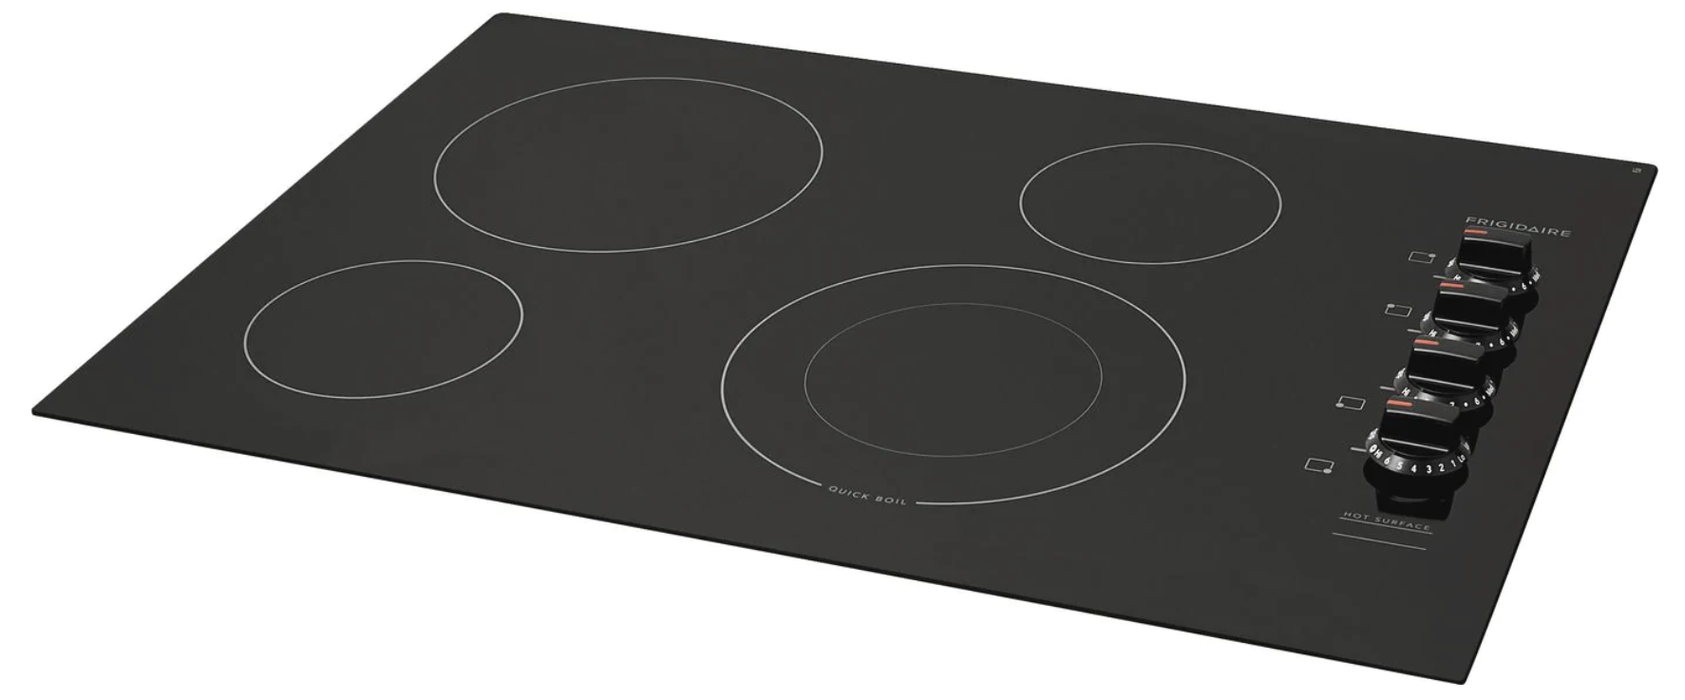 "Frigidaire 30"" 4-Element Electric Cooktop (FFEC3025UB) - Black"